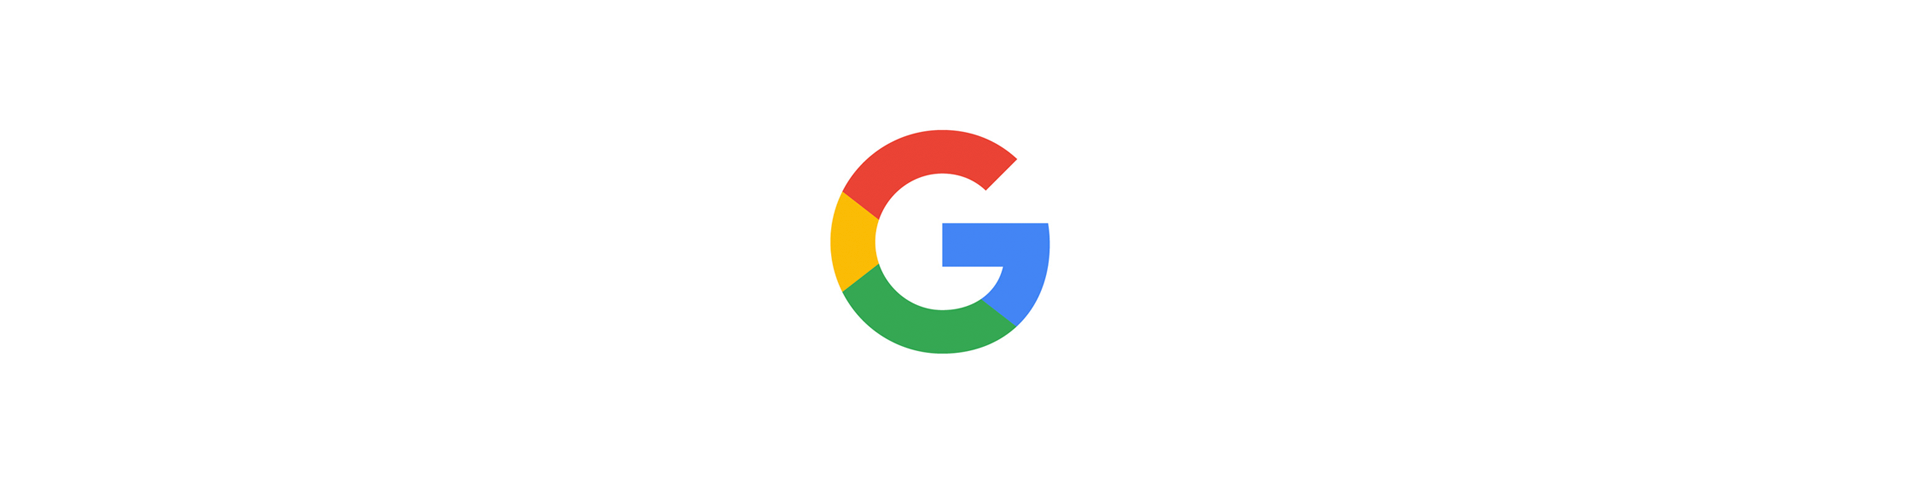 Google Sign-in, UI improvements and more